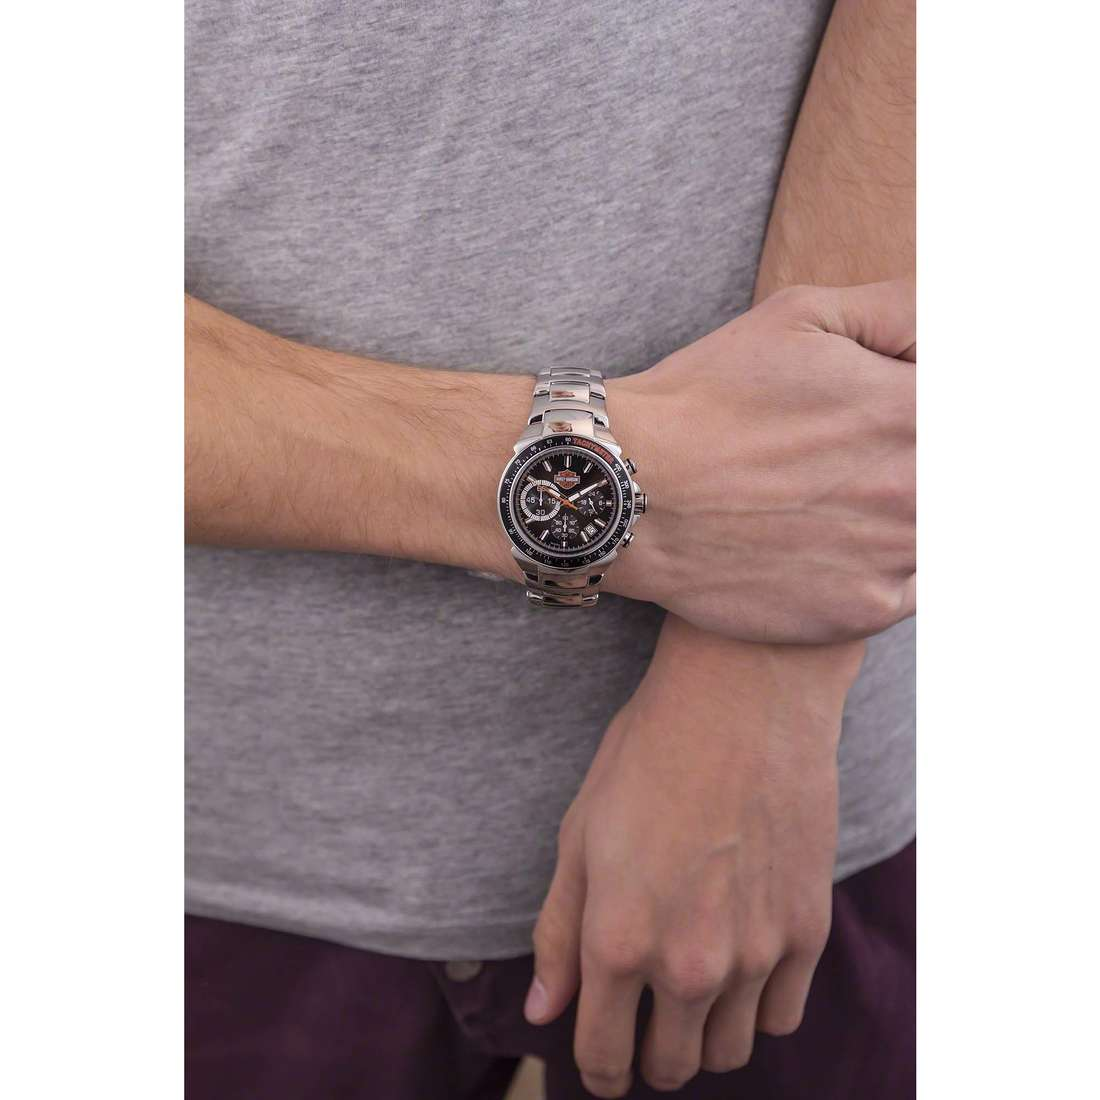 Harley Davidson chronographes homme 78B113 photo wearing